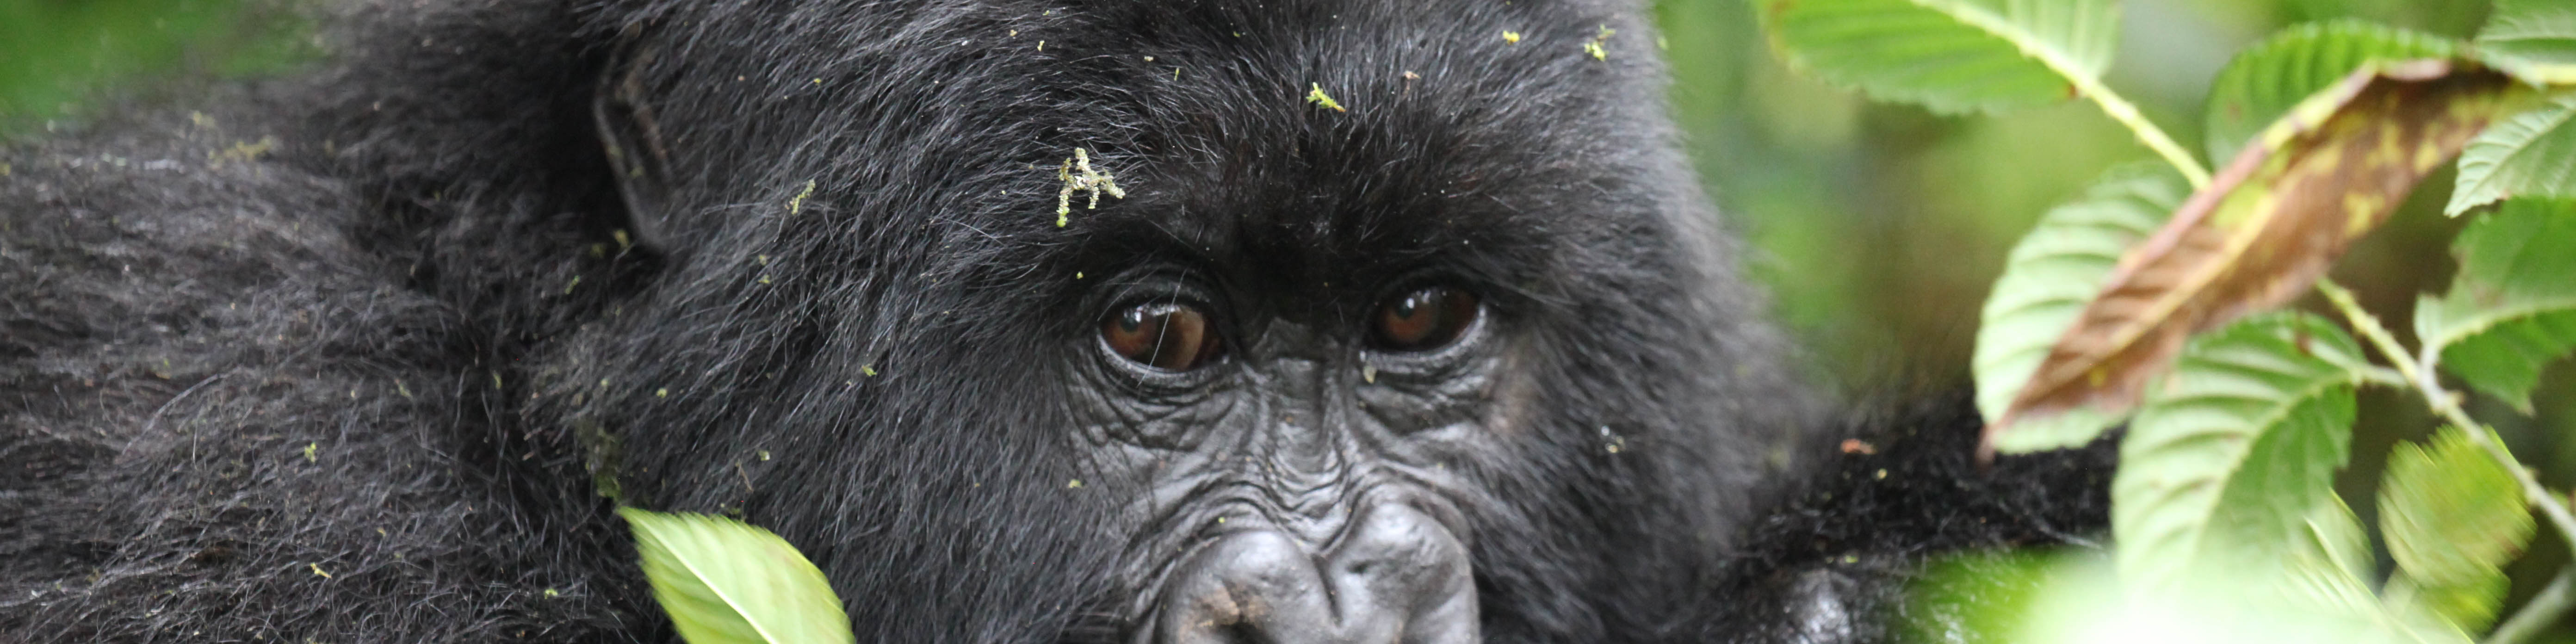 Mountain gorilla eyes